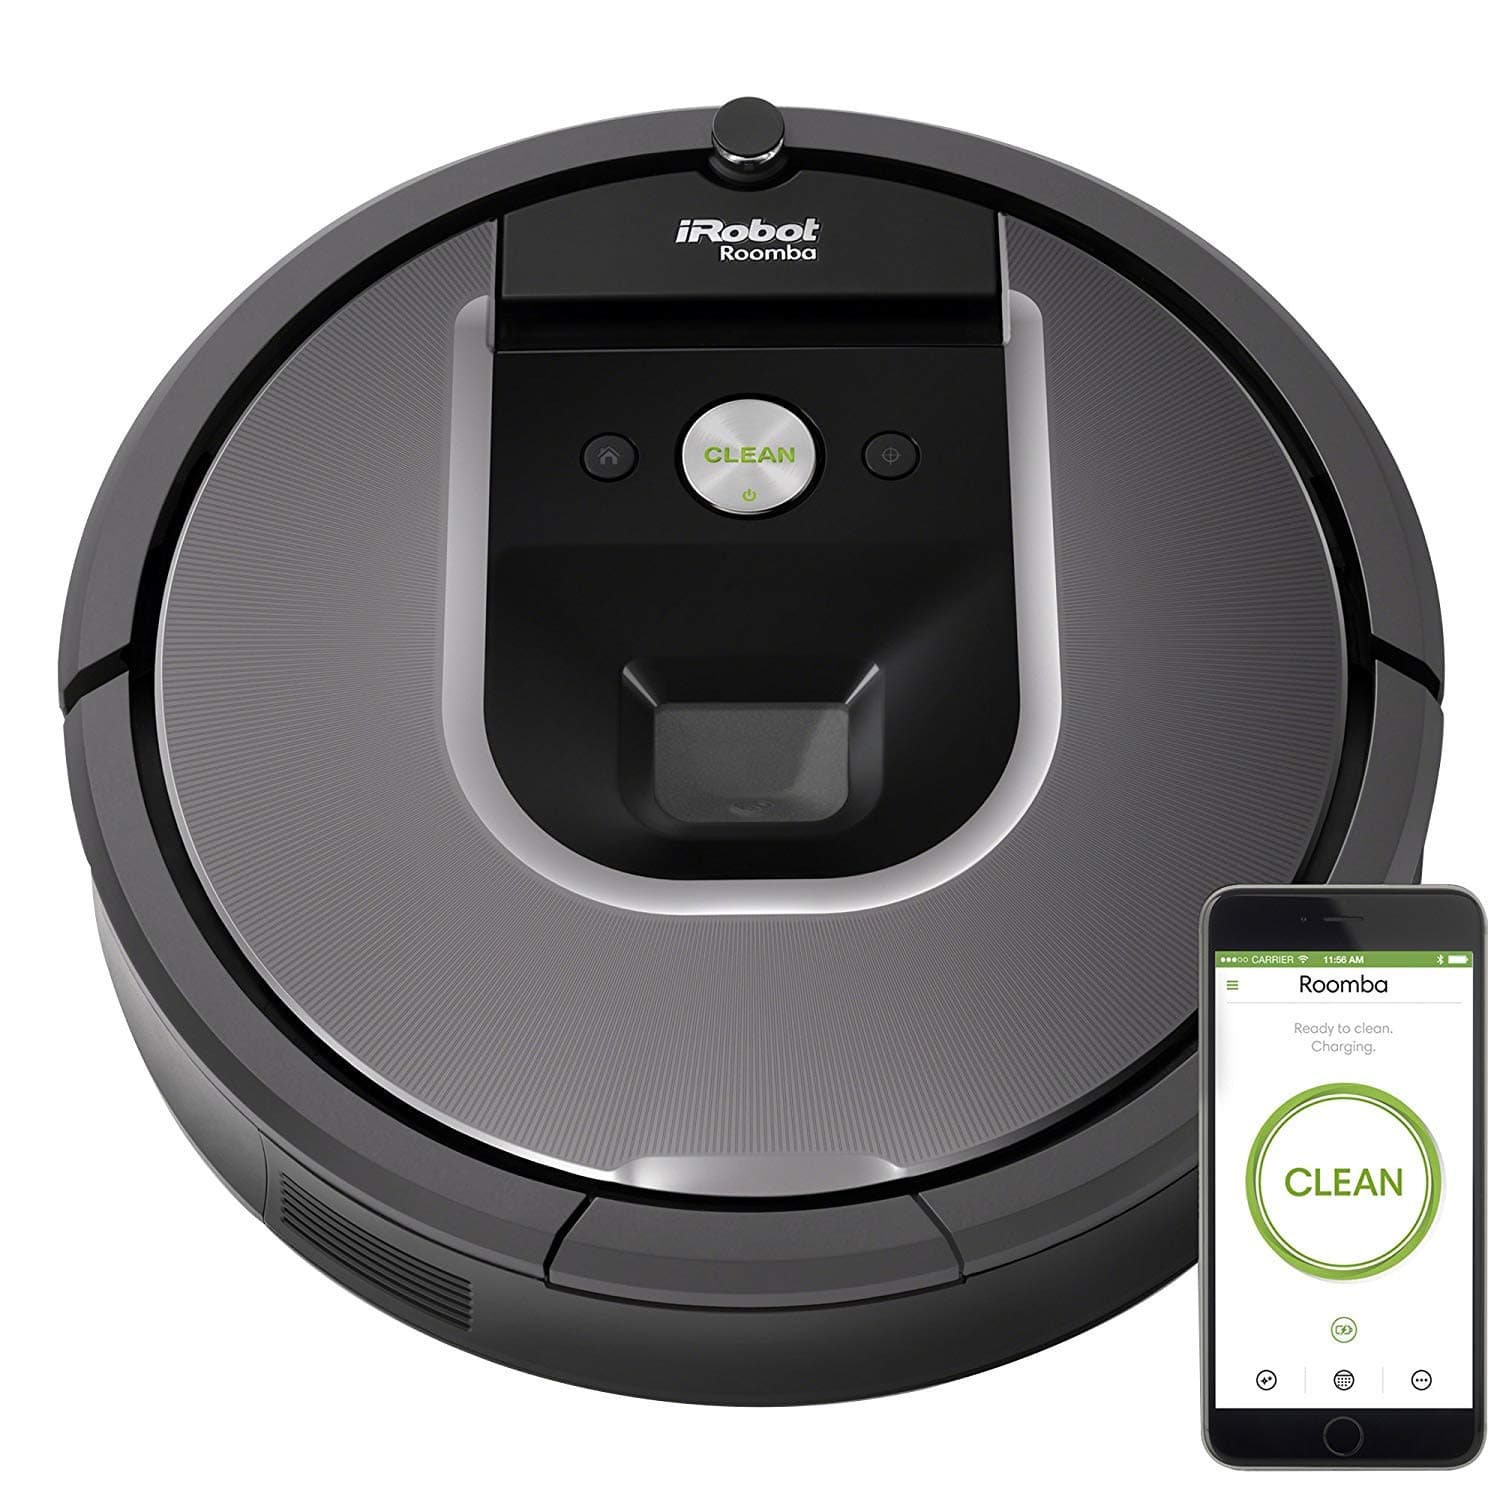 iRobot Roomba 960 Robot Vacuum (Amazon Renewed) - $319 - Amazon deal of the day